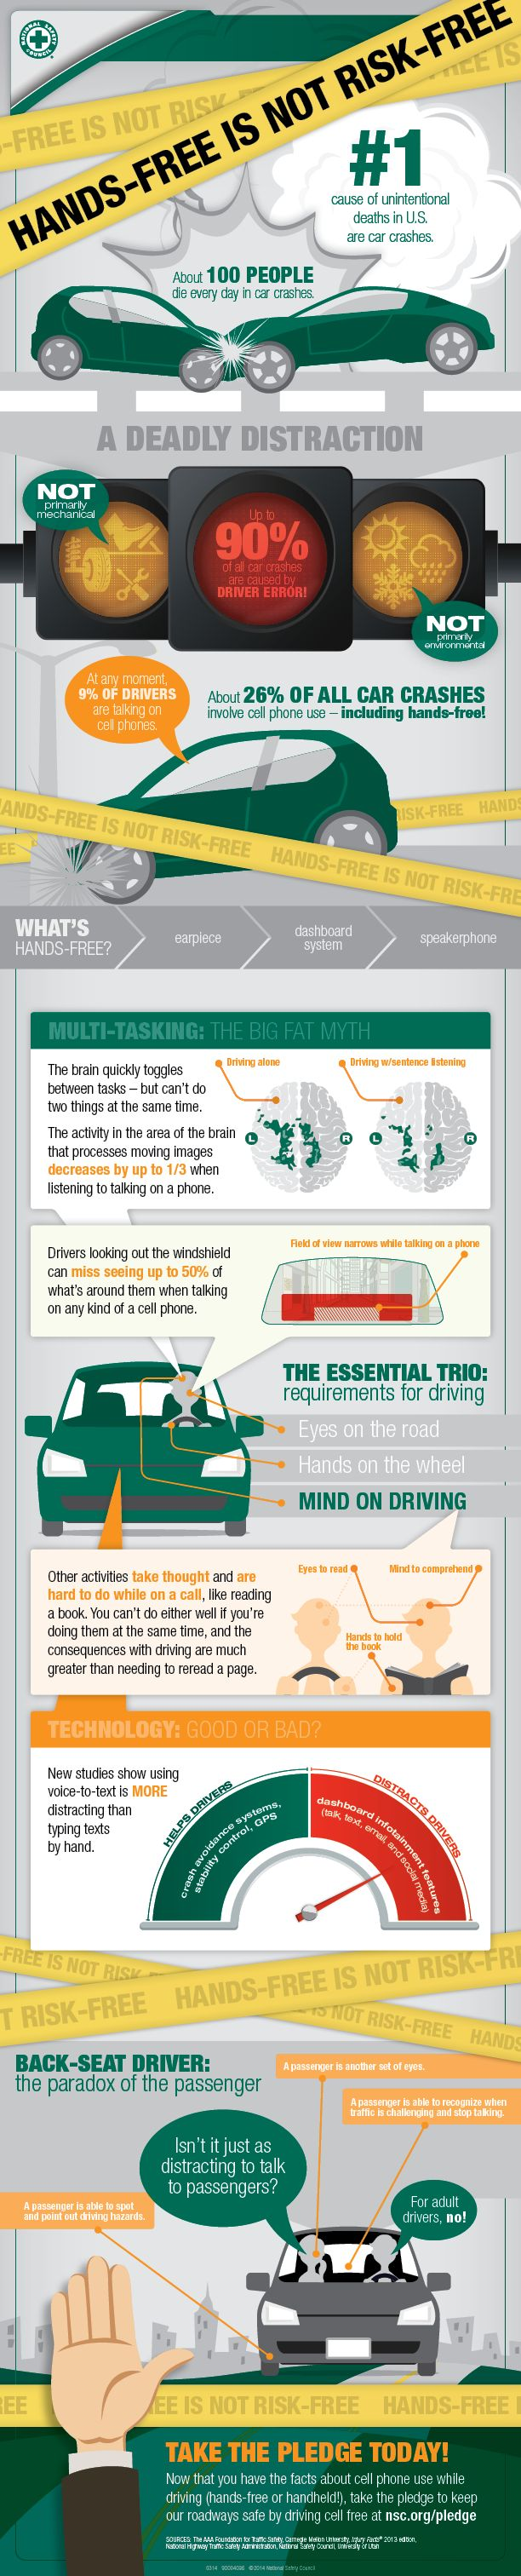 """Think you have it """"all under control""""? Check out these facts about cell phones and driving. Take the pledge and put the safety of family and friends, first! #TakeBackMyDrive #ad @NSCsafety"""